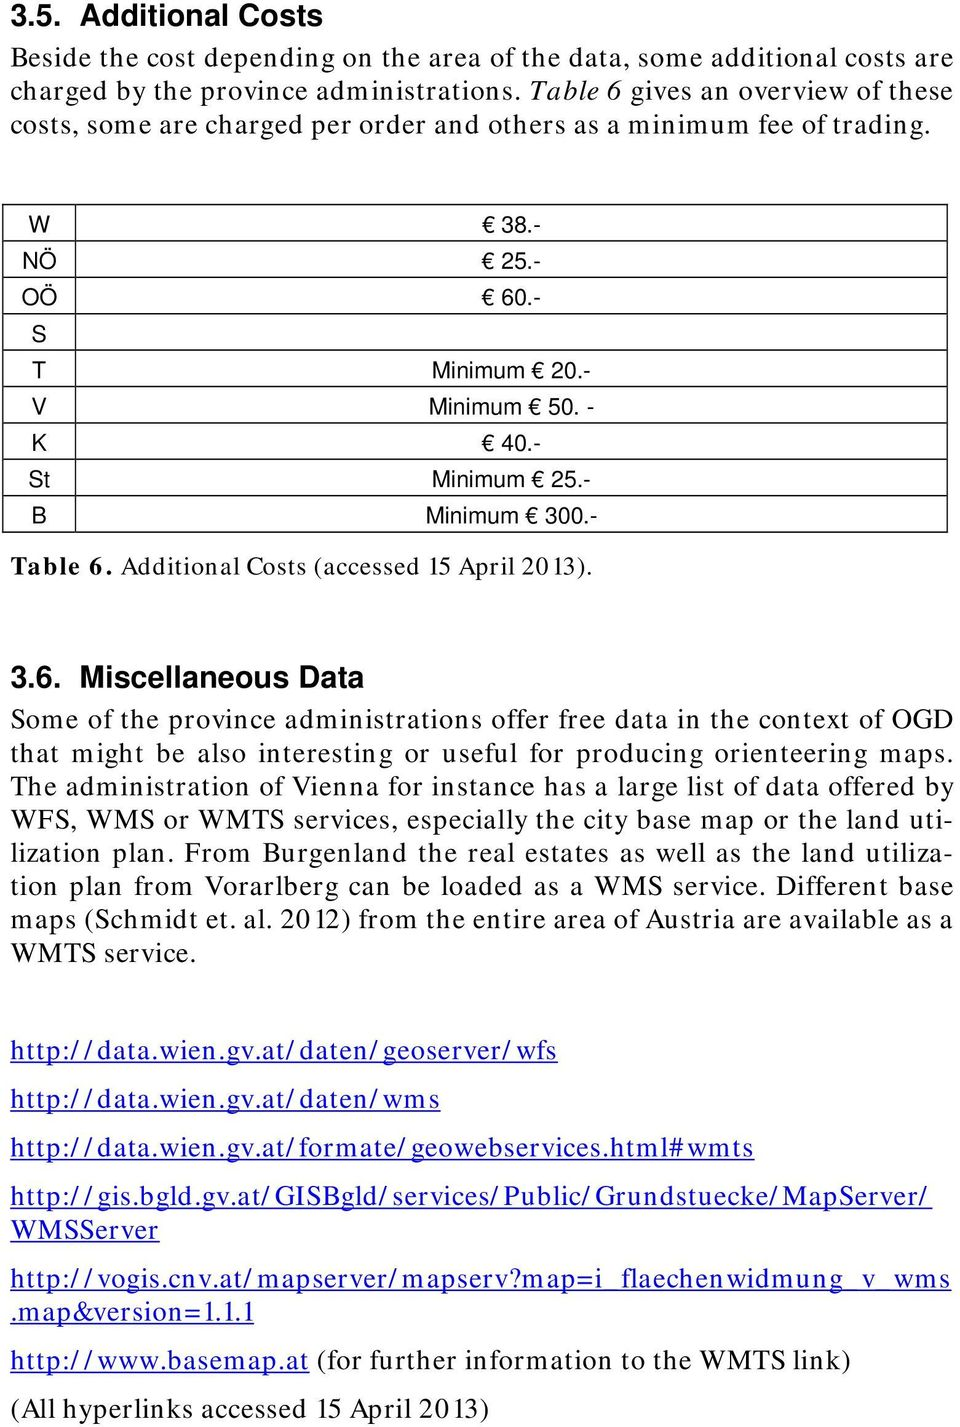 - B Minimum 300.- Table 6. Additional Costs (accessed 15 April 2013). 3.6. Miscellaneous Data Some of the province administrations offer free data in the context of OGD that might be also interesting or useful for producing orienteering maps.